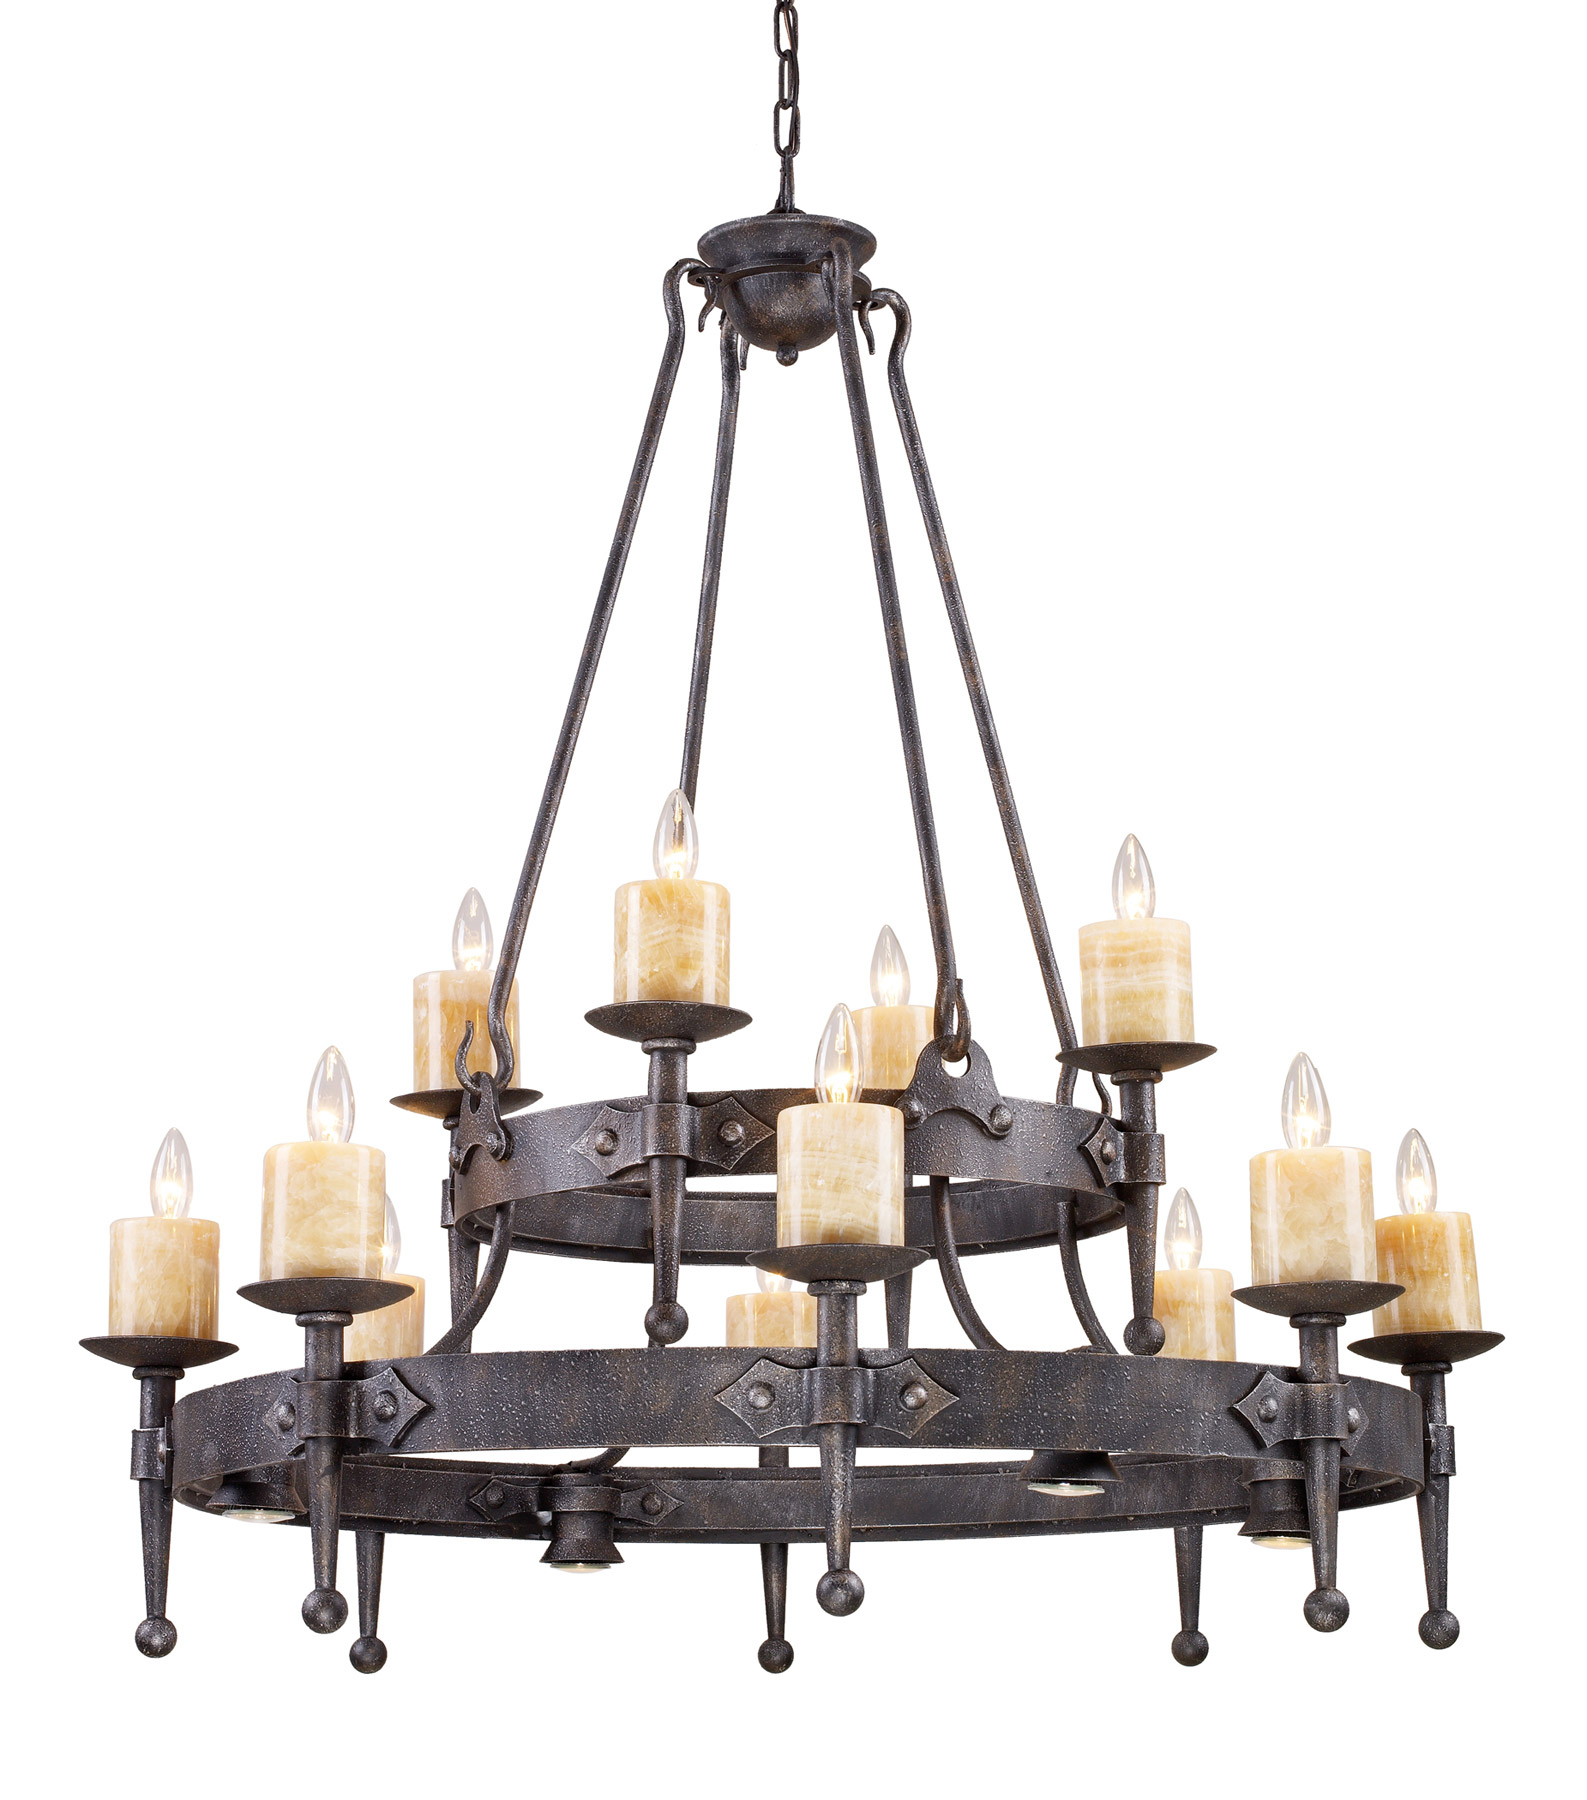 Hand forged and wrought iron ceiling mounted lighting lamps beautiful elk lighting 14006844 cambridge twenty four light chandelier mozeypictures Image collections